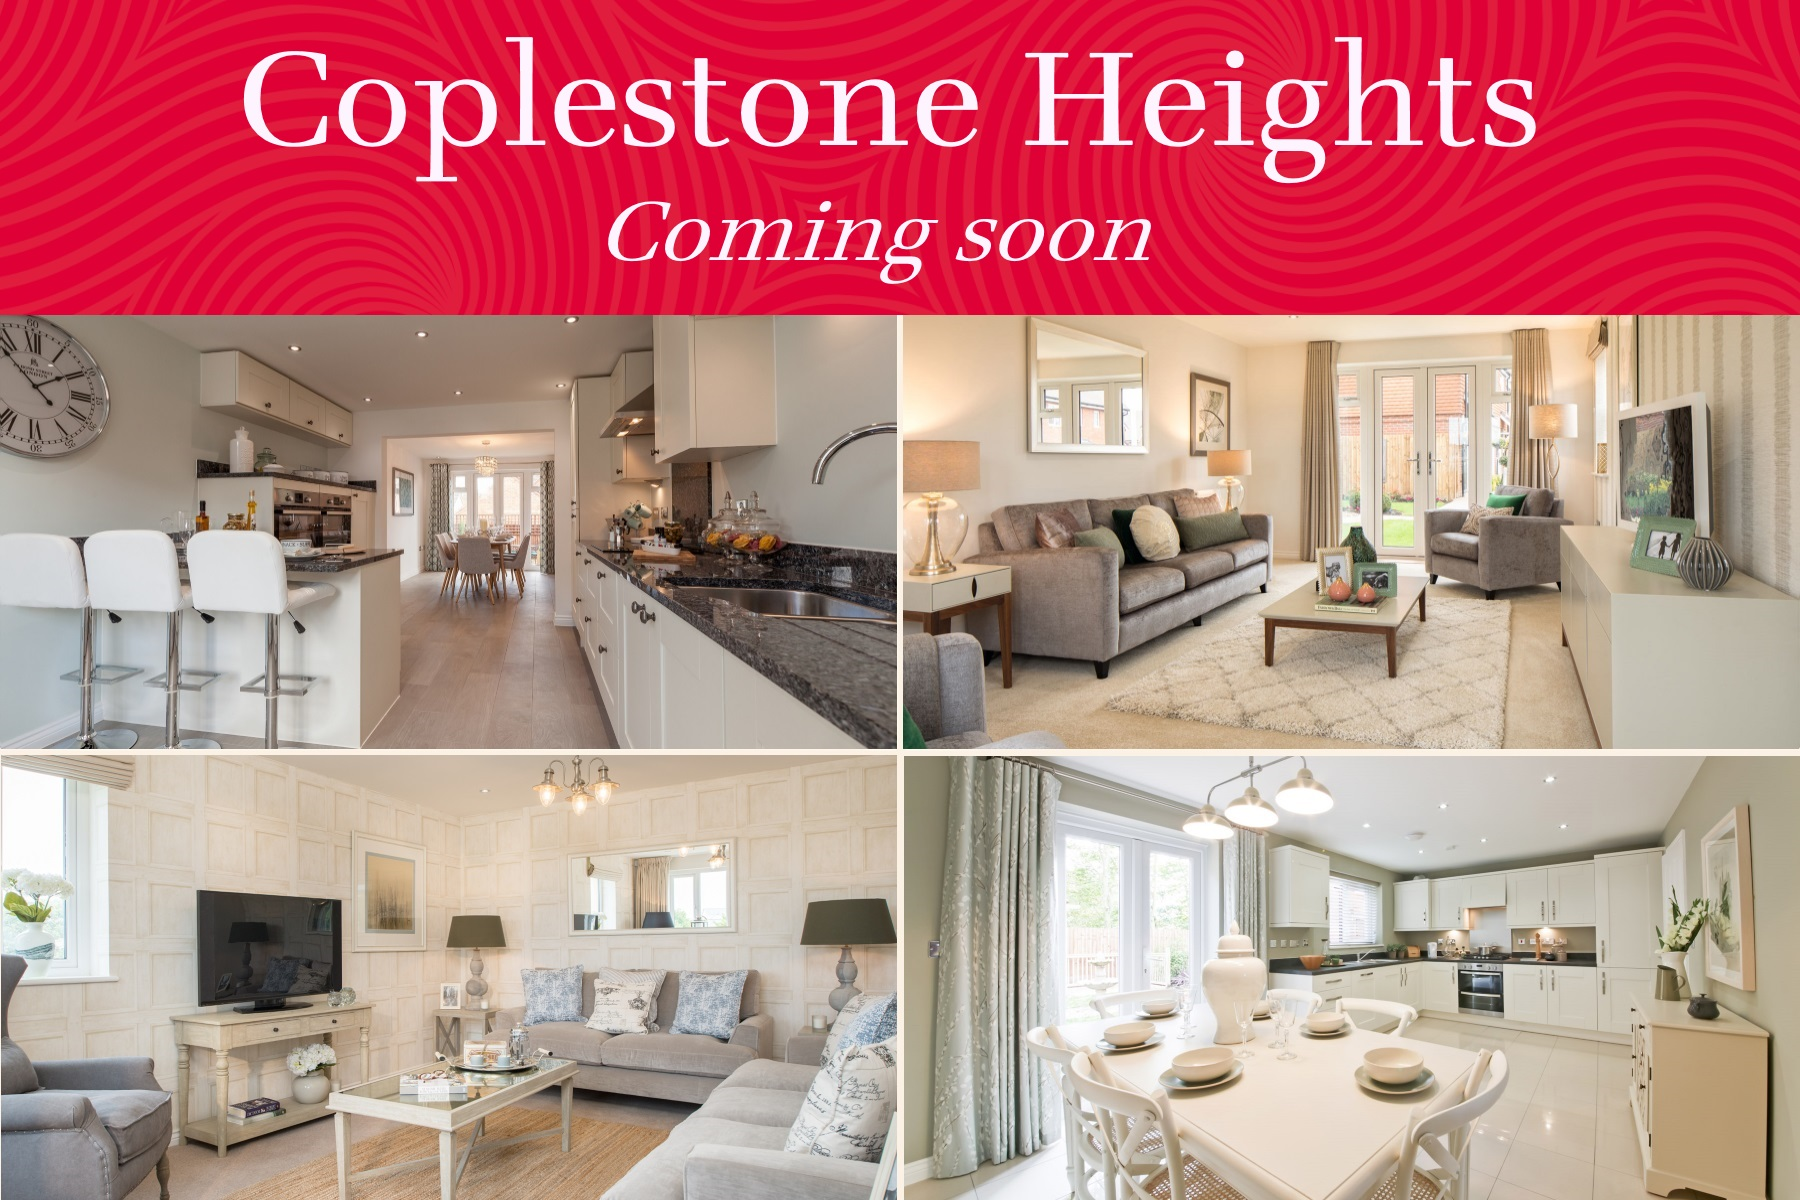 Coplestone Heights - coming soon